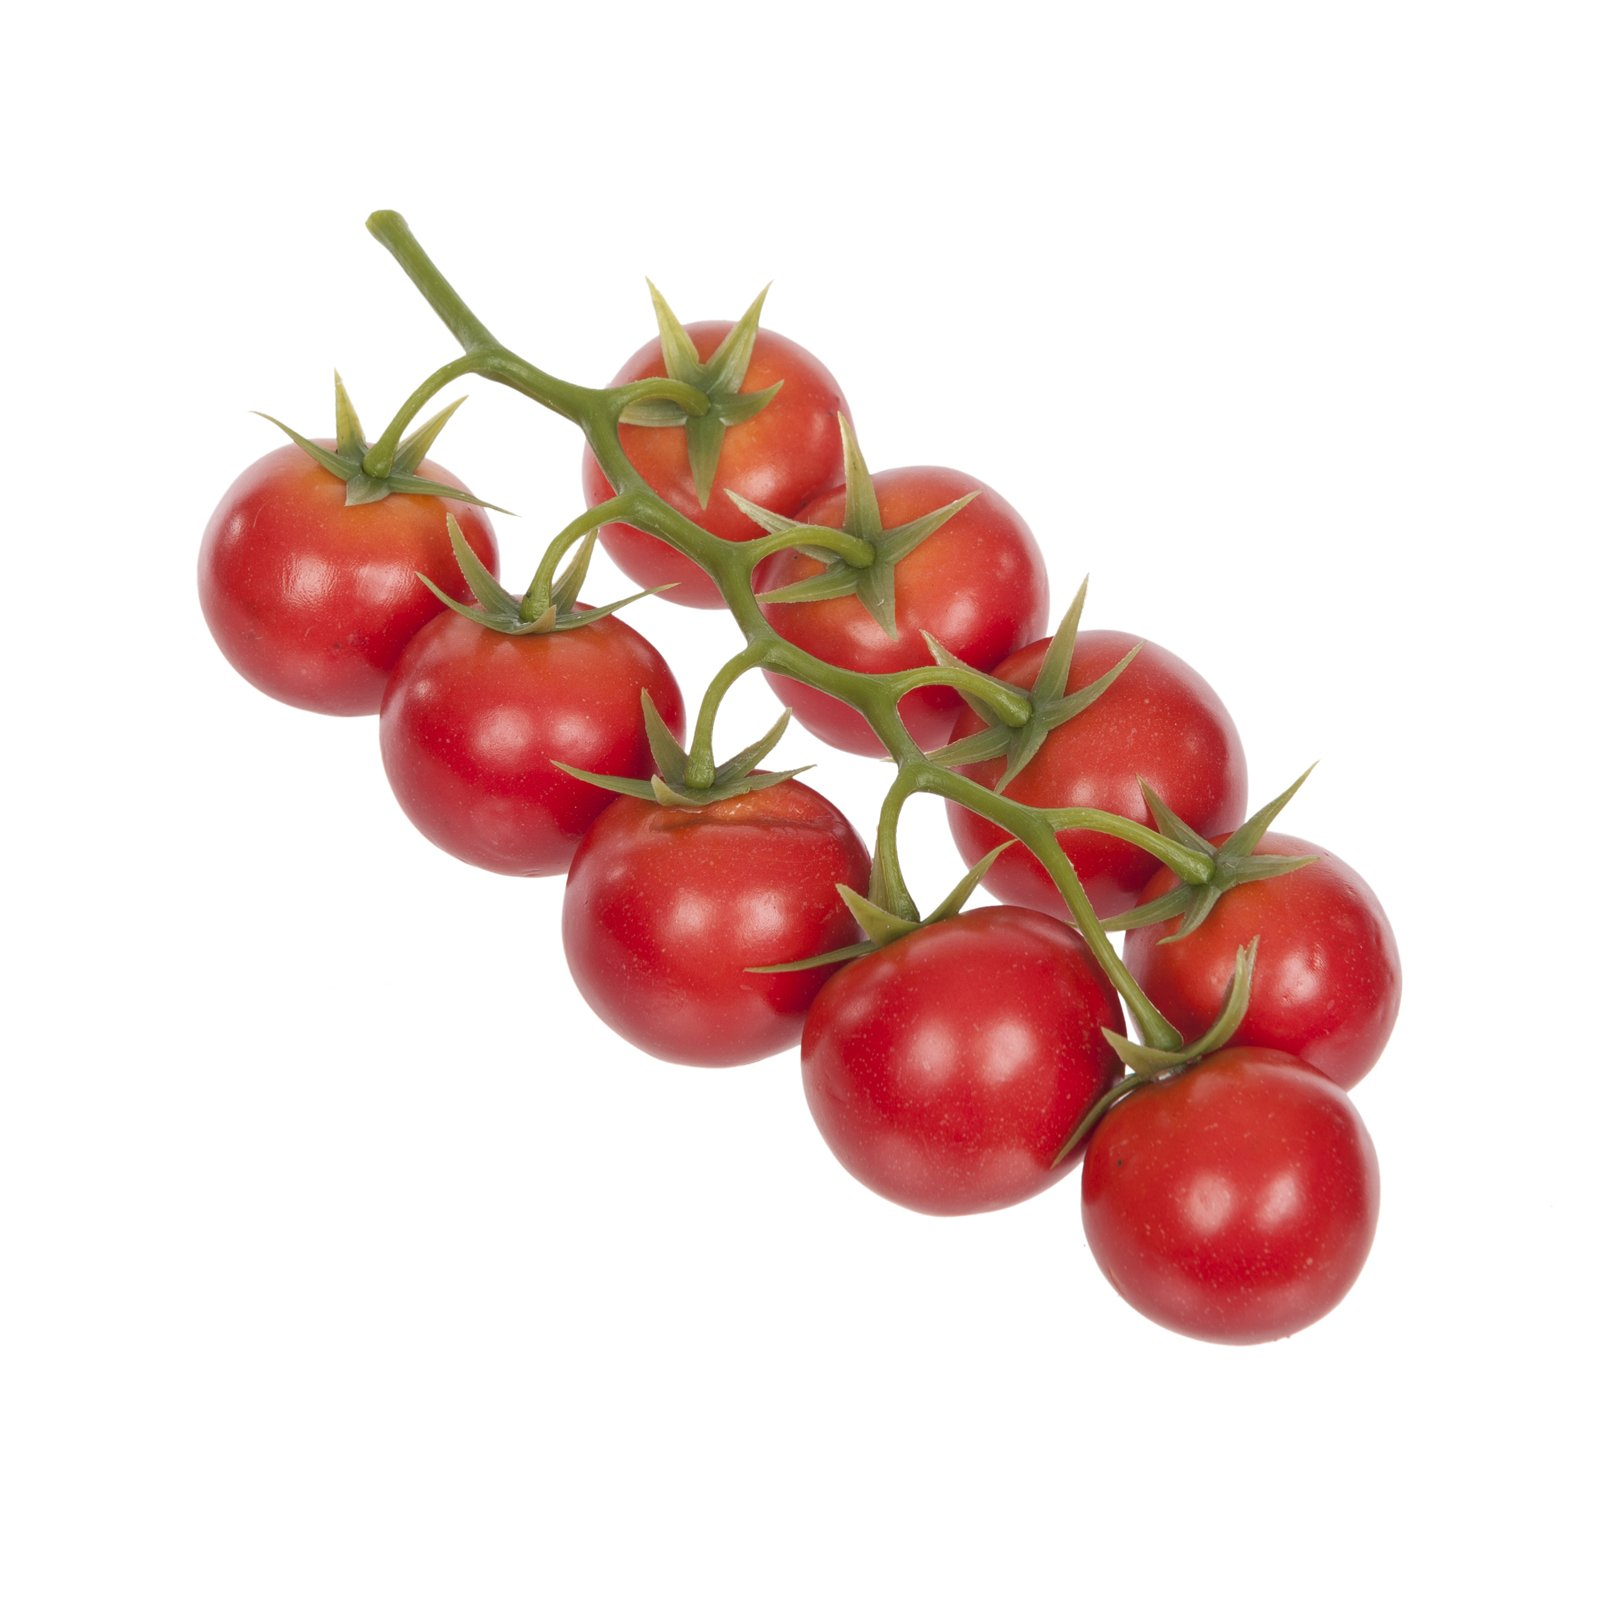 FloristryWarehouse Artificial Cherry Tomato 9 Red Fruits on the Vine 8.25 Inches Mock Summer Fruits by Floristrywarehouse